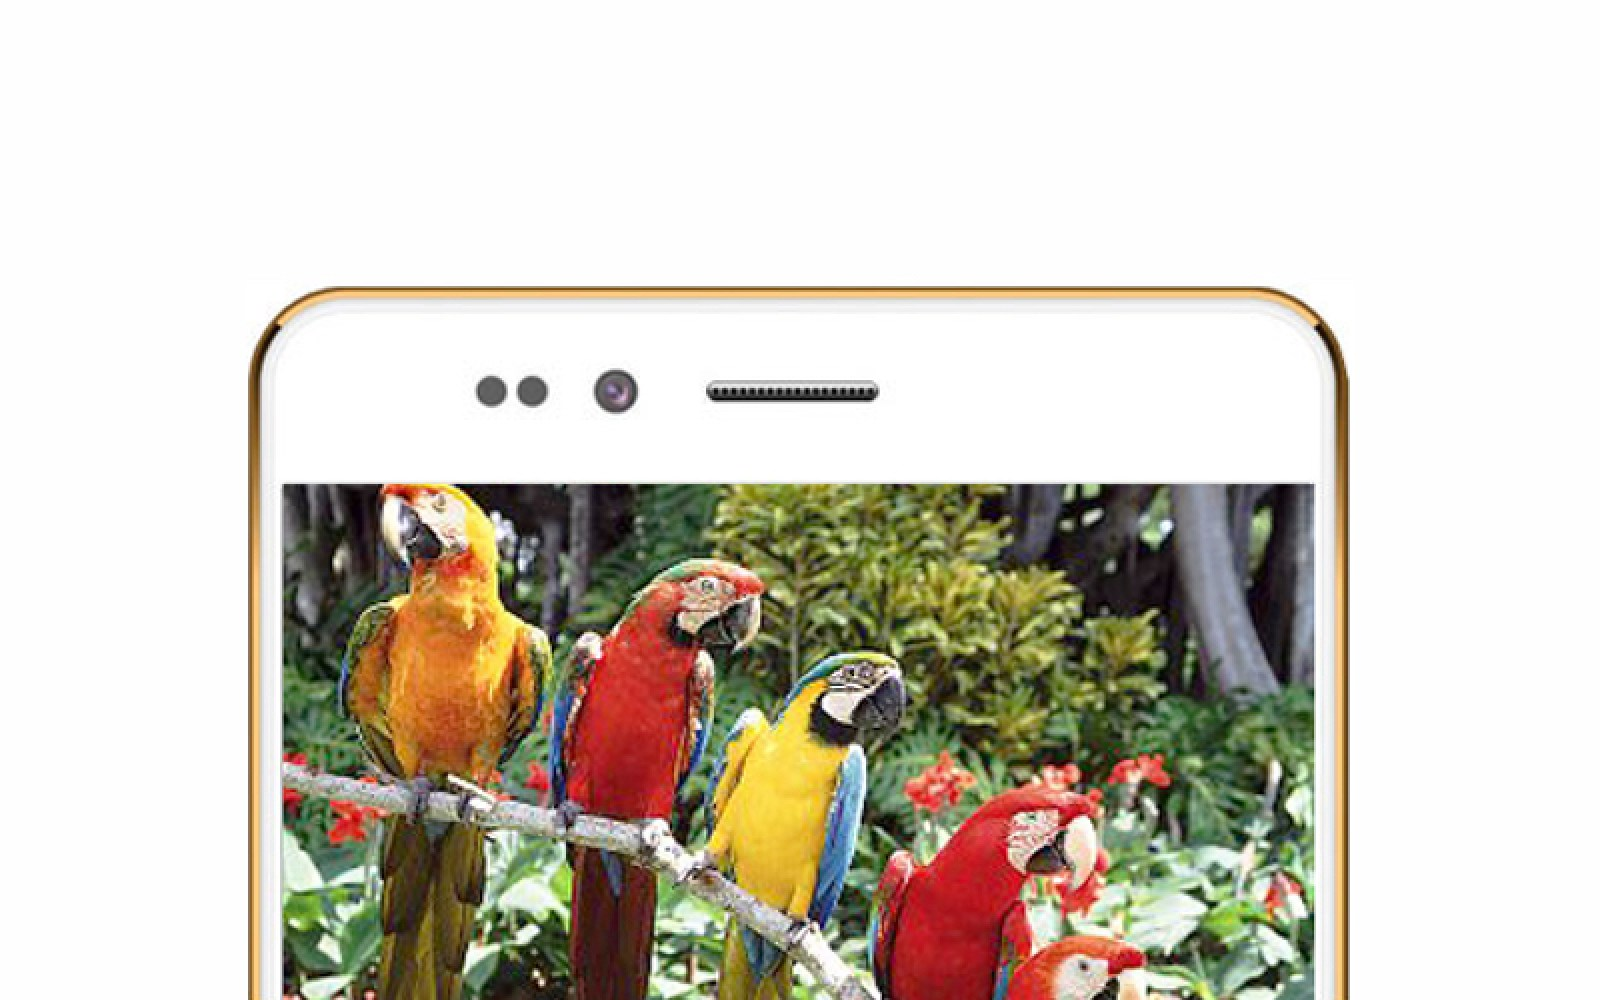 Freedom 251 is a 4-inch Android smartphone with quad-core processor that costs less than $4